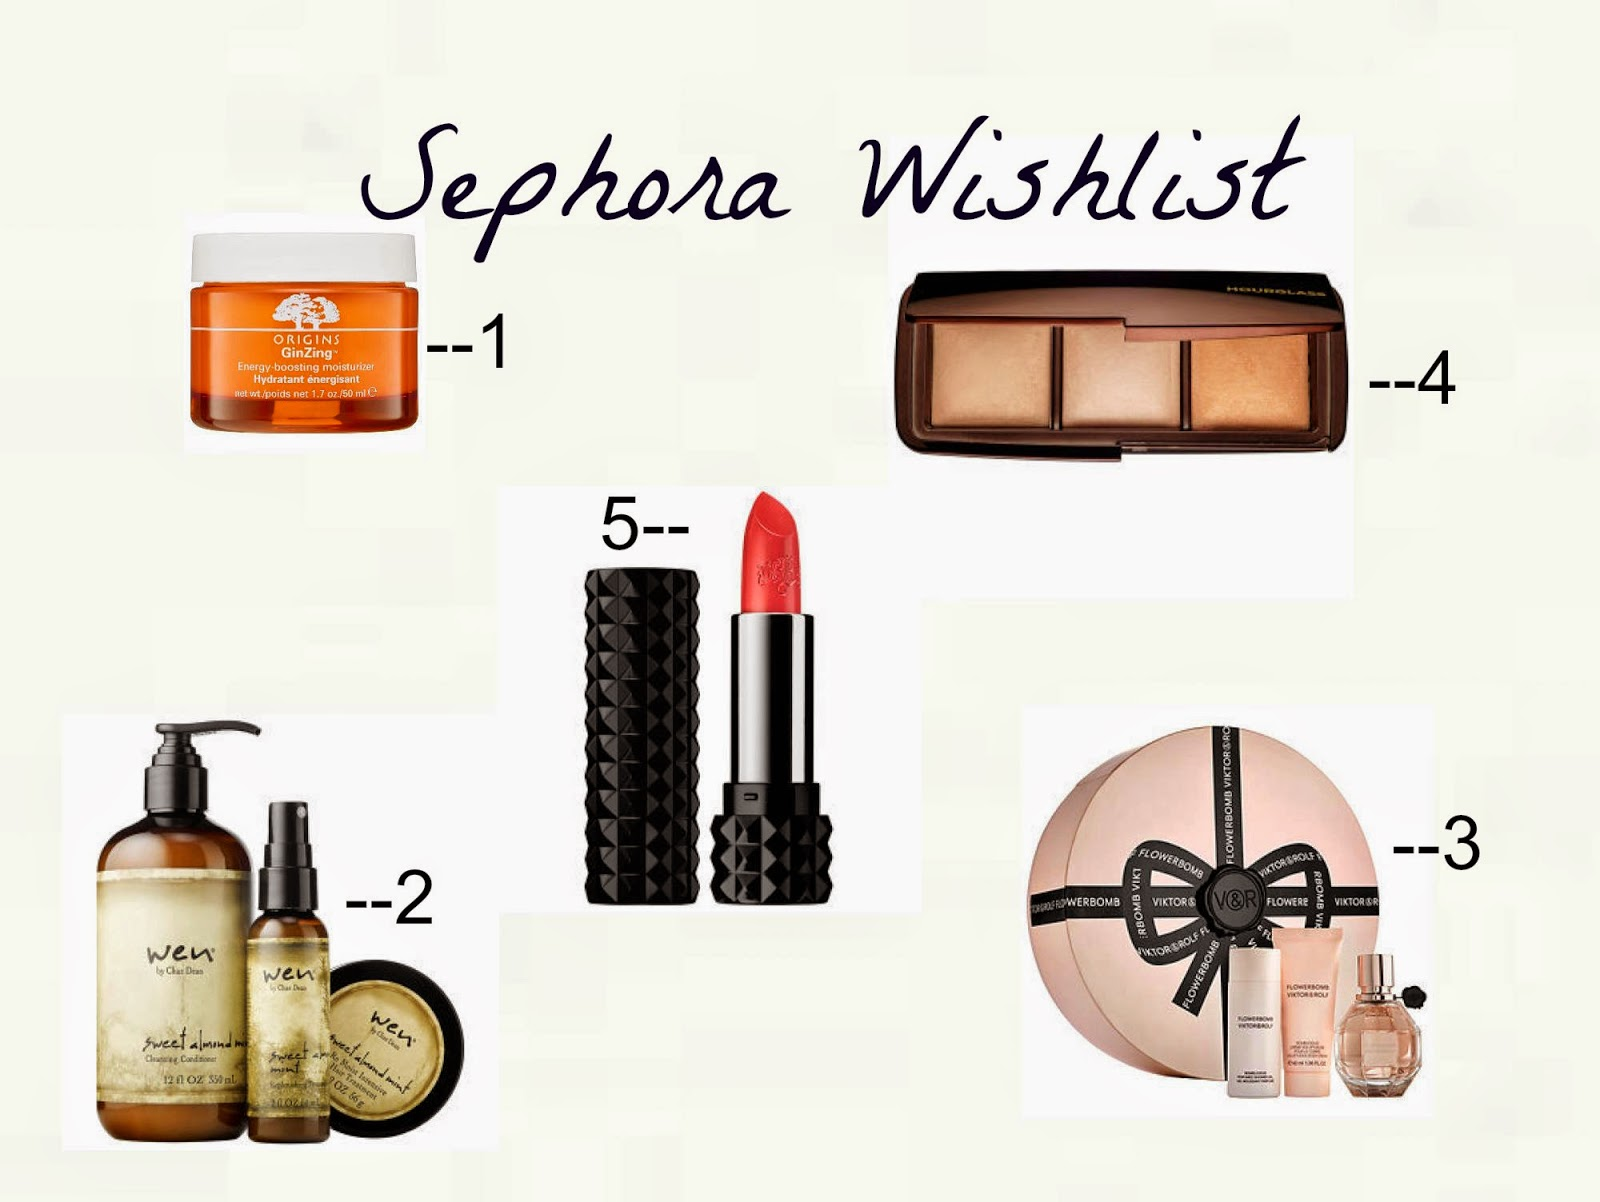 sephora wishlist,  Viktor & Rolf Flowerbomb Gift Set, Chaz Dean Healthy Hair Care Kit, Origins GinZing Moisturizer, Hourglass Ambient Lighting Palette, sephora sale wishlist,